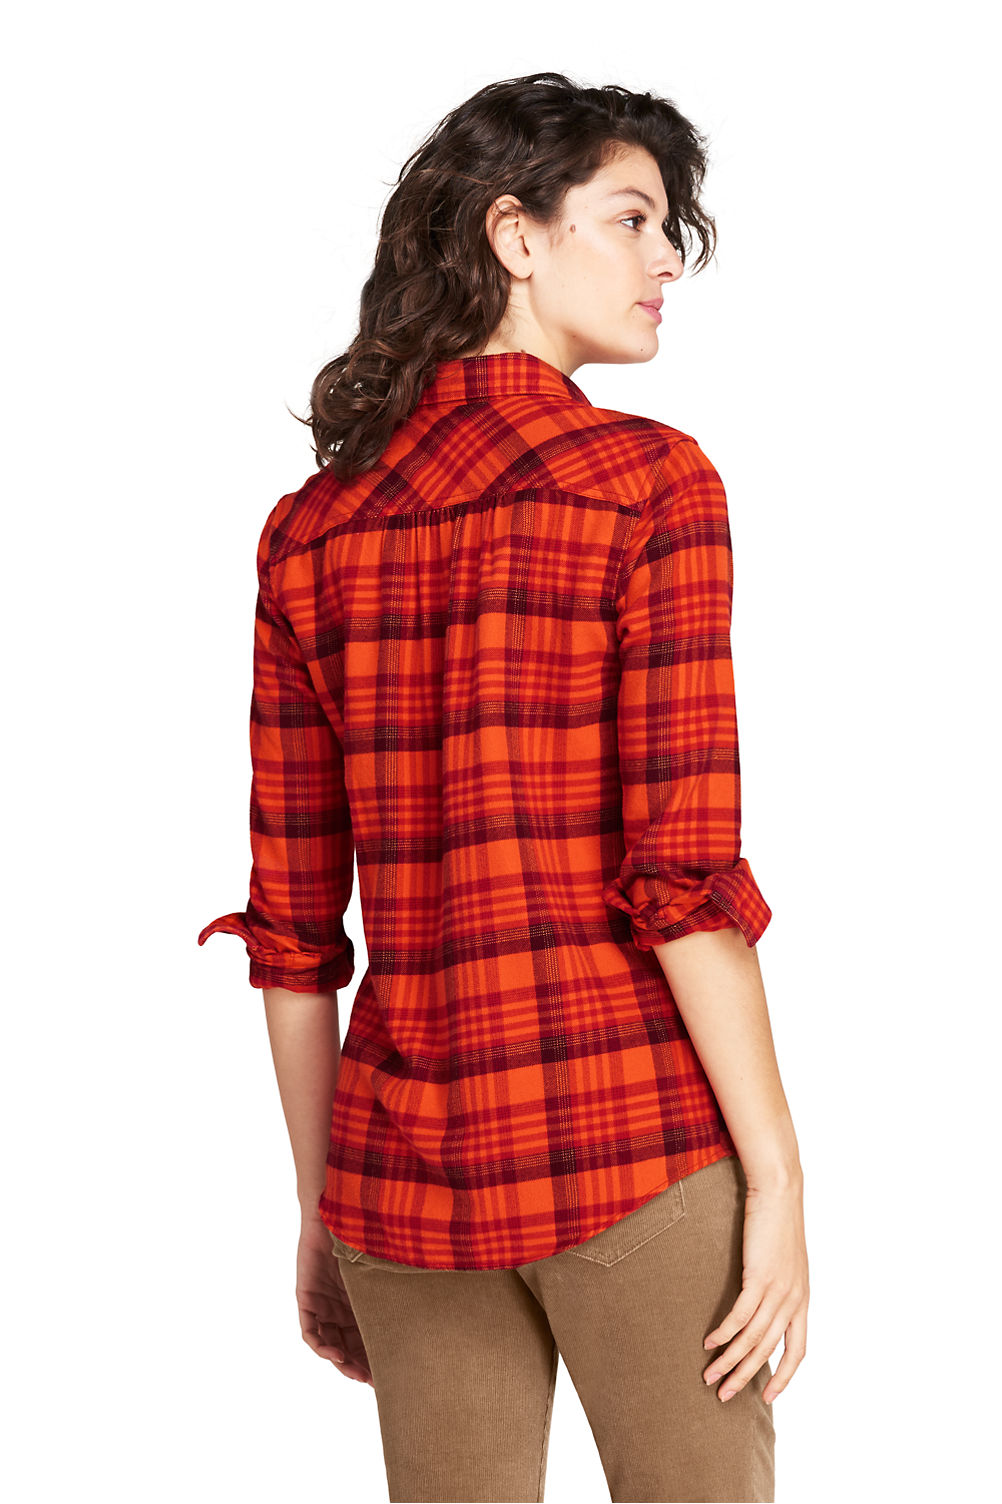 Womens Red Plaid Shirt Canada – Rockwall Auction 533cca51c4